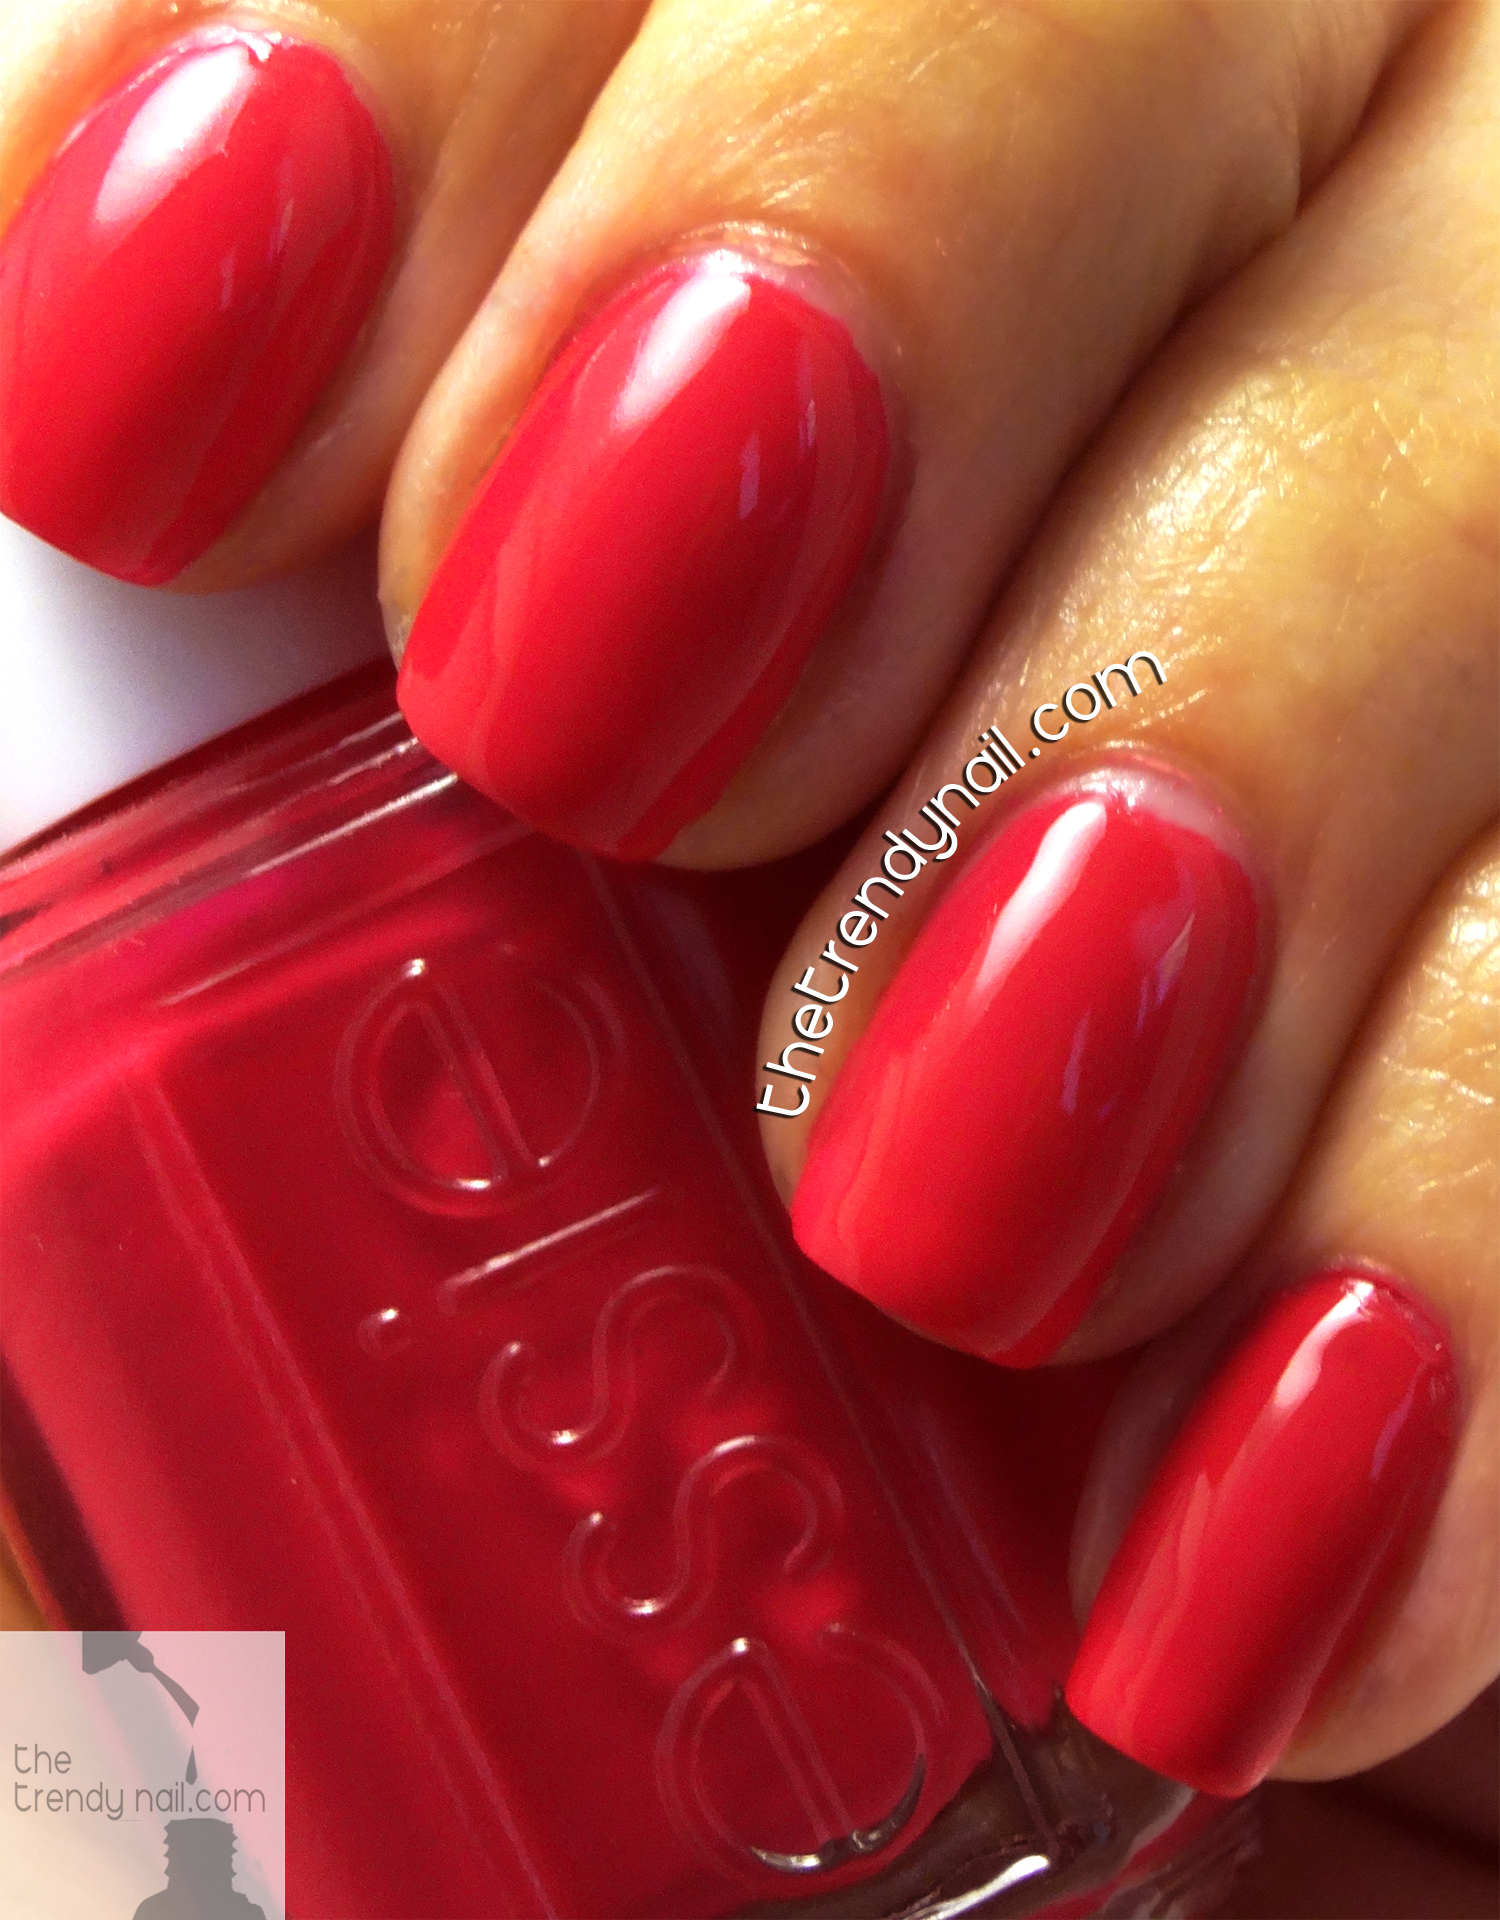 SUMMER CHERRY RED NAILS: STYLE HUNTER ESSIE - The Trendy Nail